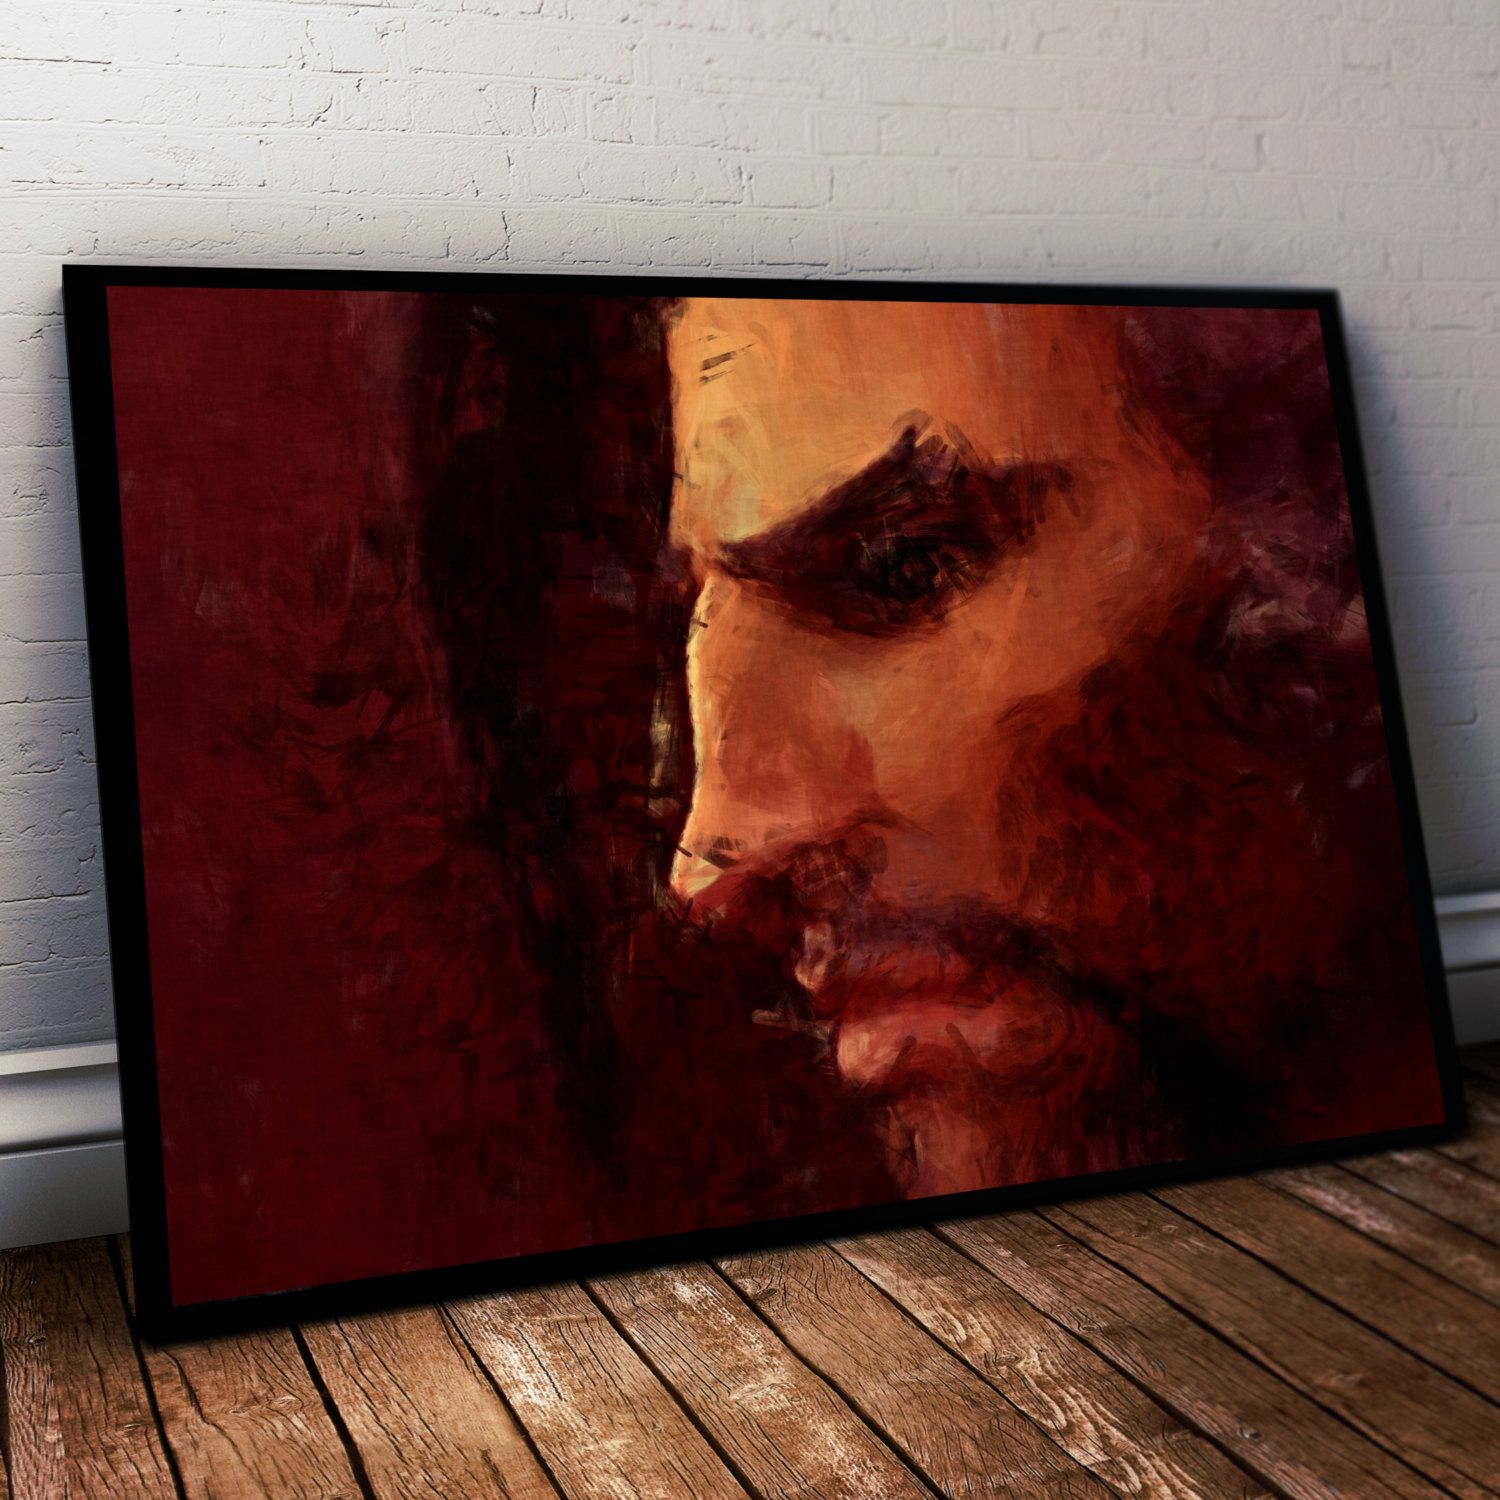 Overwatch Poster. Overwatch Hanzo Painting Print. Mounted Canvas available on request details in Listing by LilRedDotDesigns on Etsy